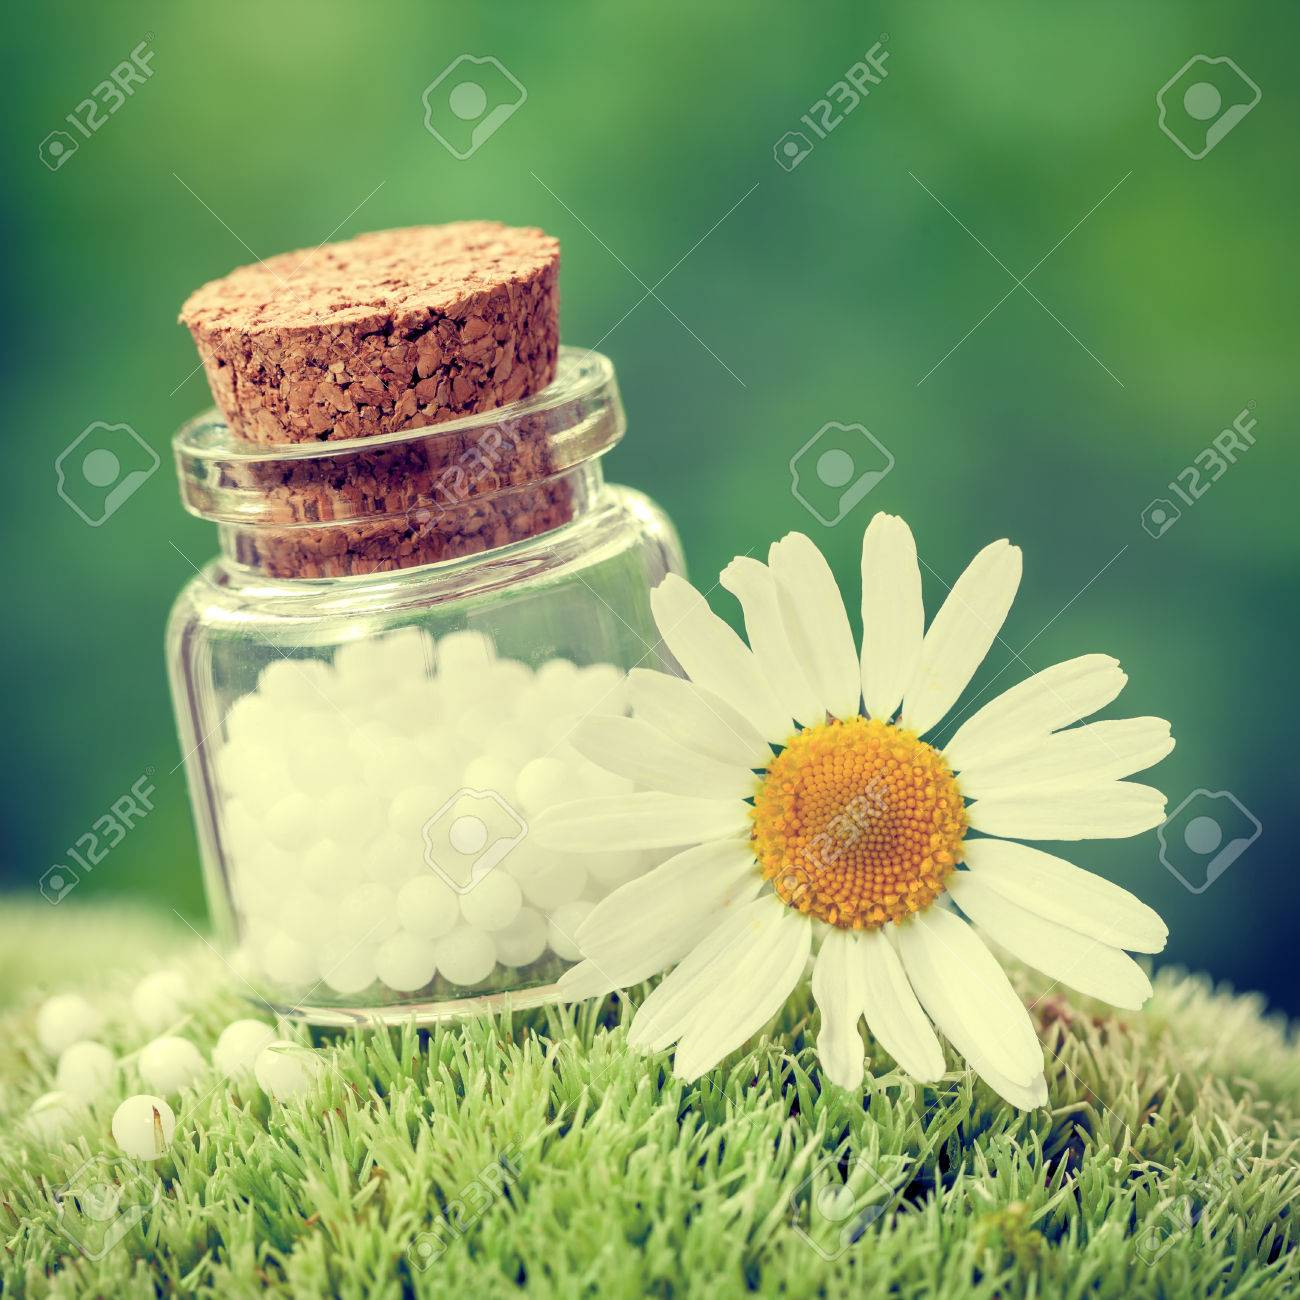 Bottle of homeopathy globules and daisy flower on green moss bottle of homeopathy globules and daisy flower on green moss retro styled stock photo izmirmasajfo Gallery